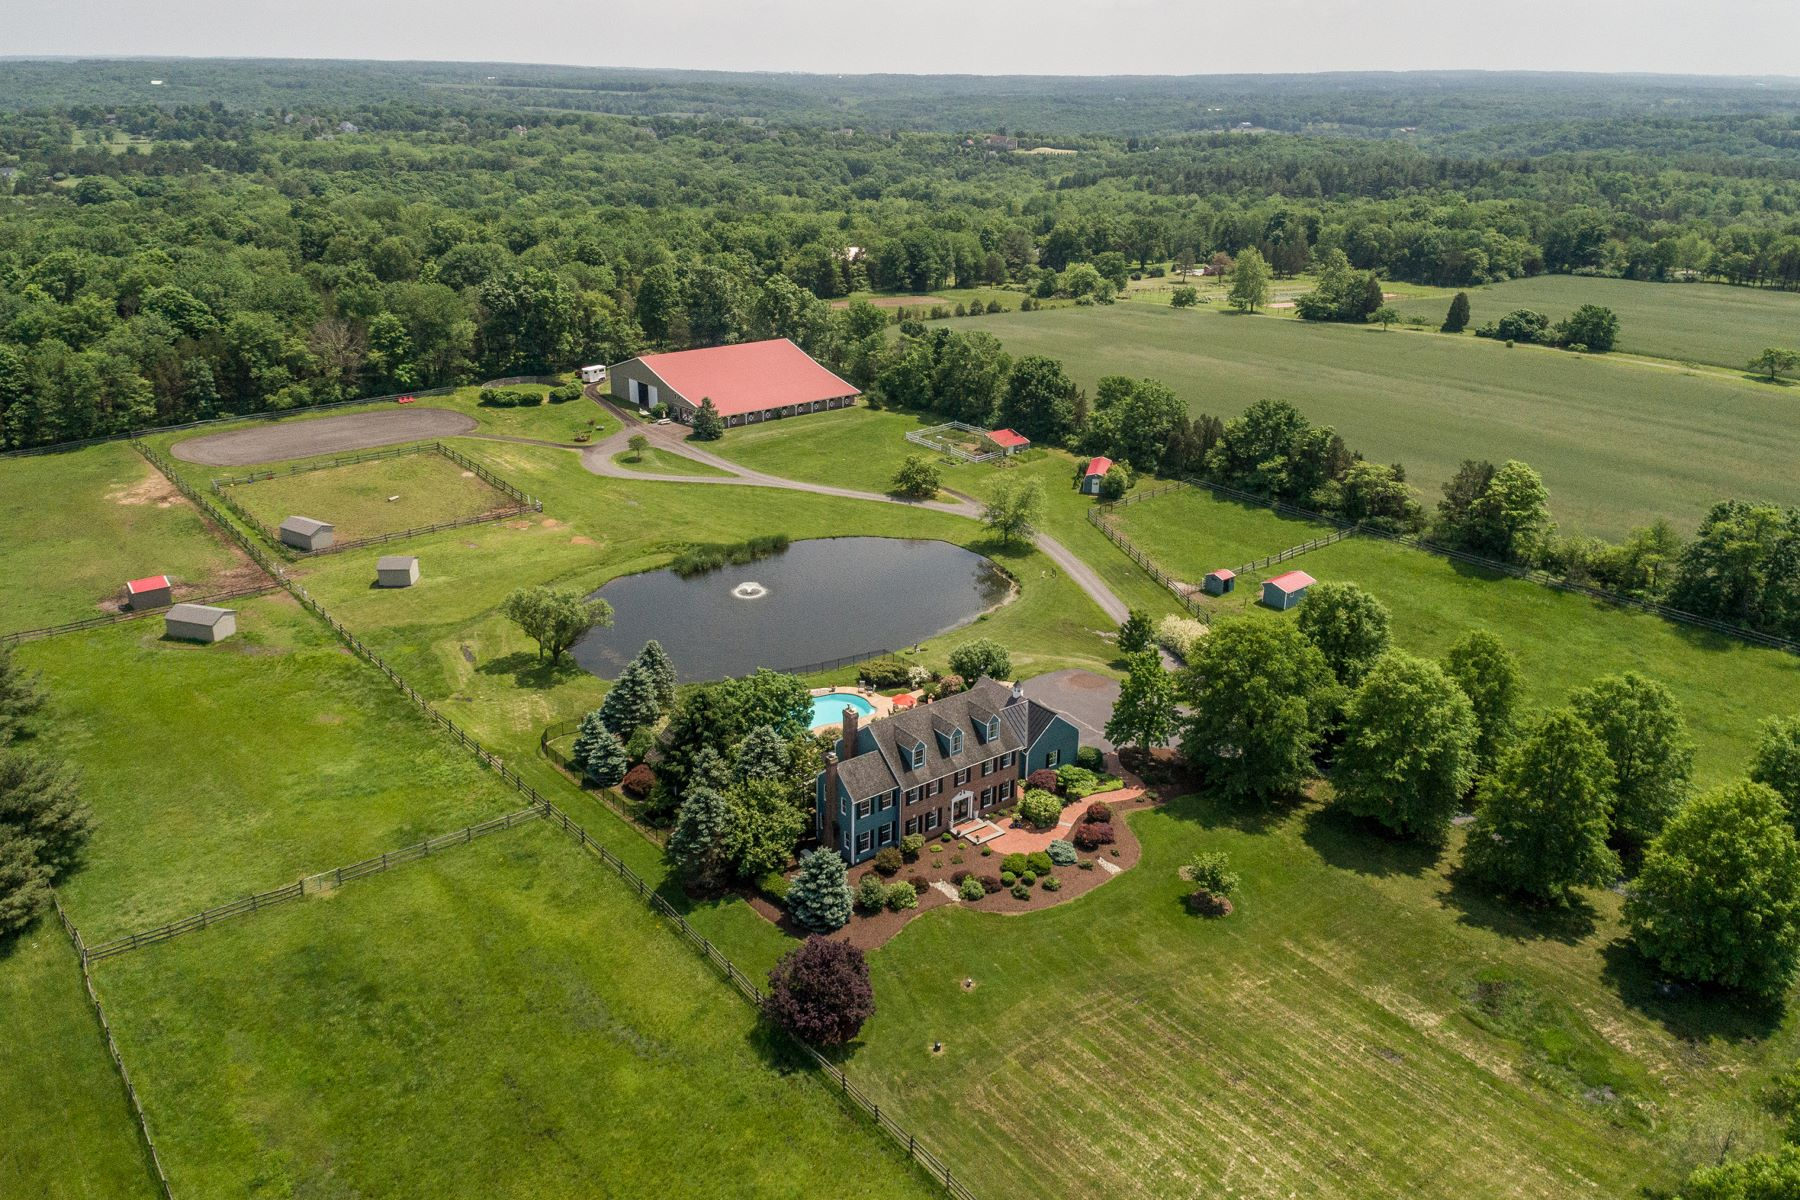 Single Family Homes for Sale at Hill & Dale Farm 553 GEIGEL HILL RD, Ottsville, Pennsylvania 18942 United States